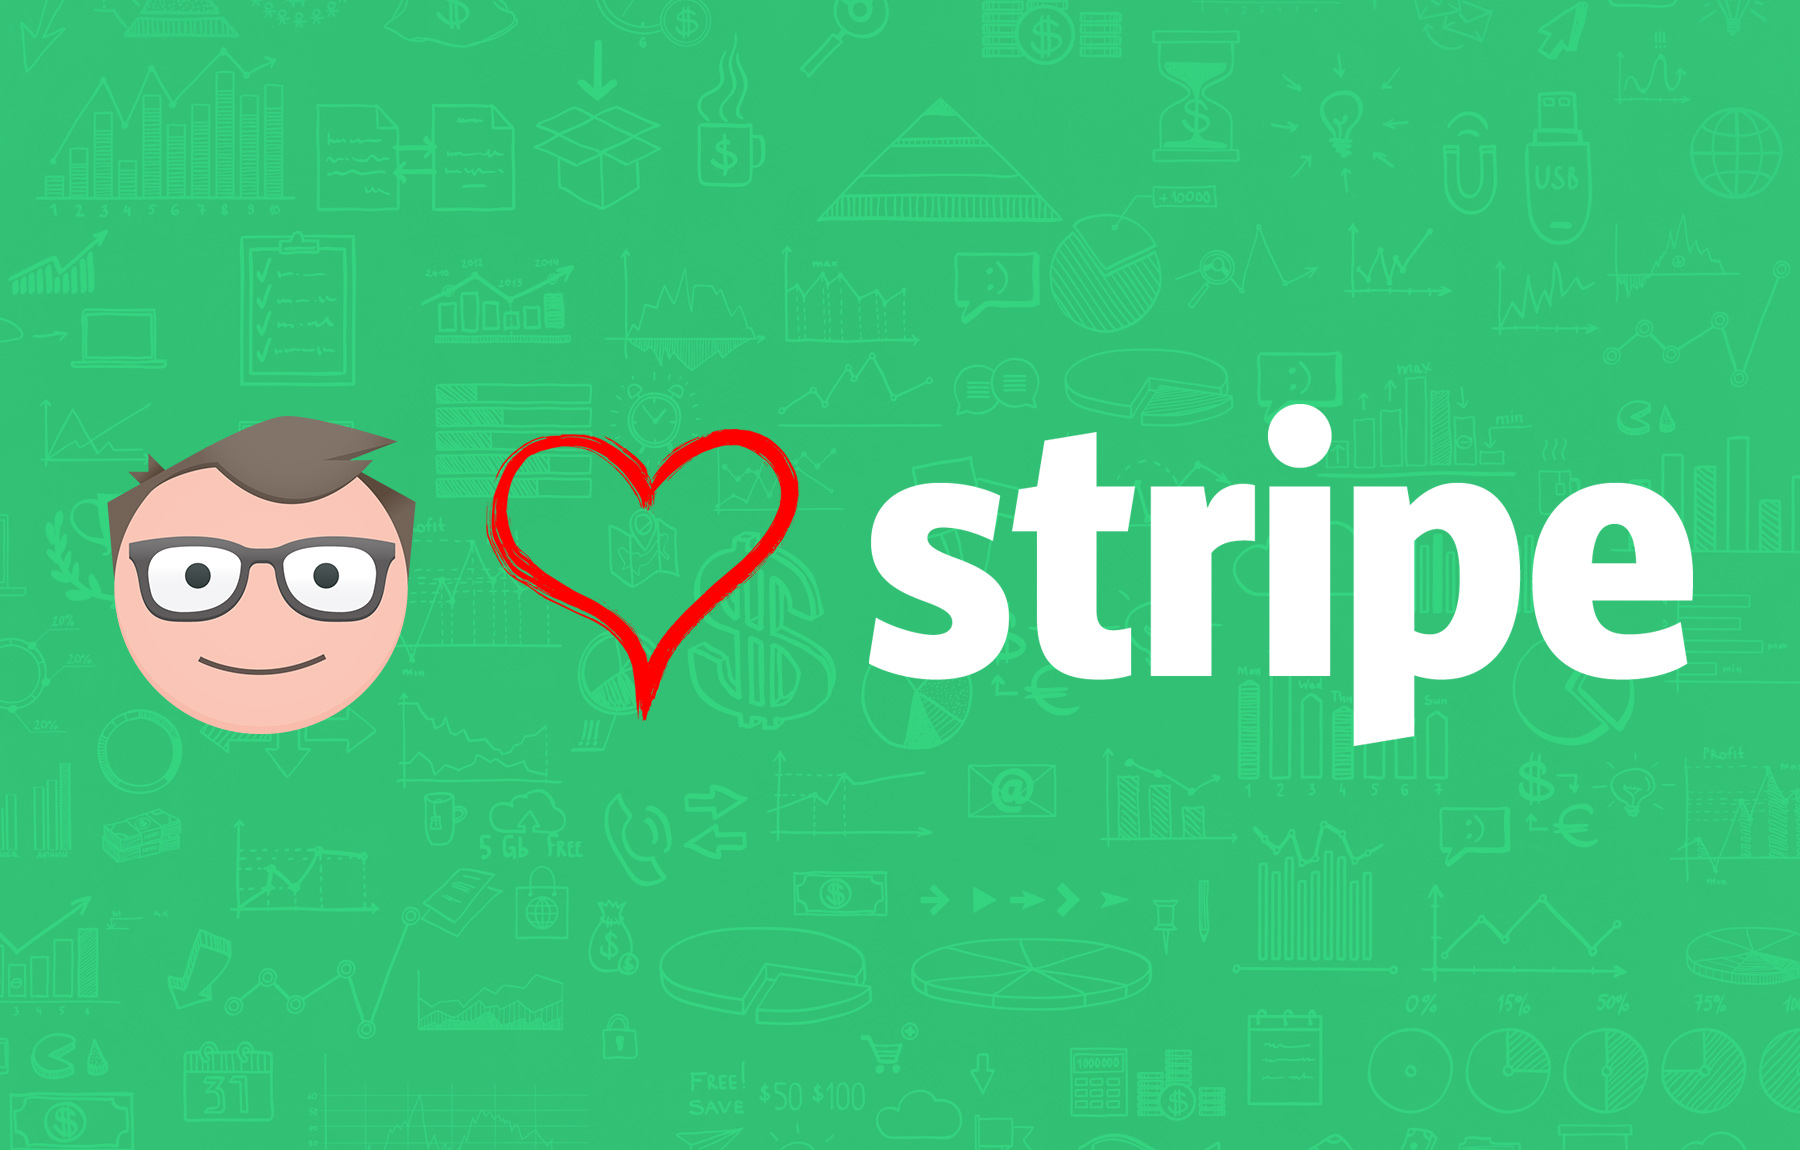 Billy Accounting App - Billy + Stripe = Frictionless Invoicing